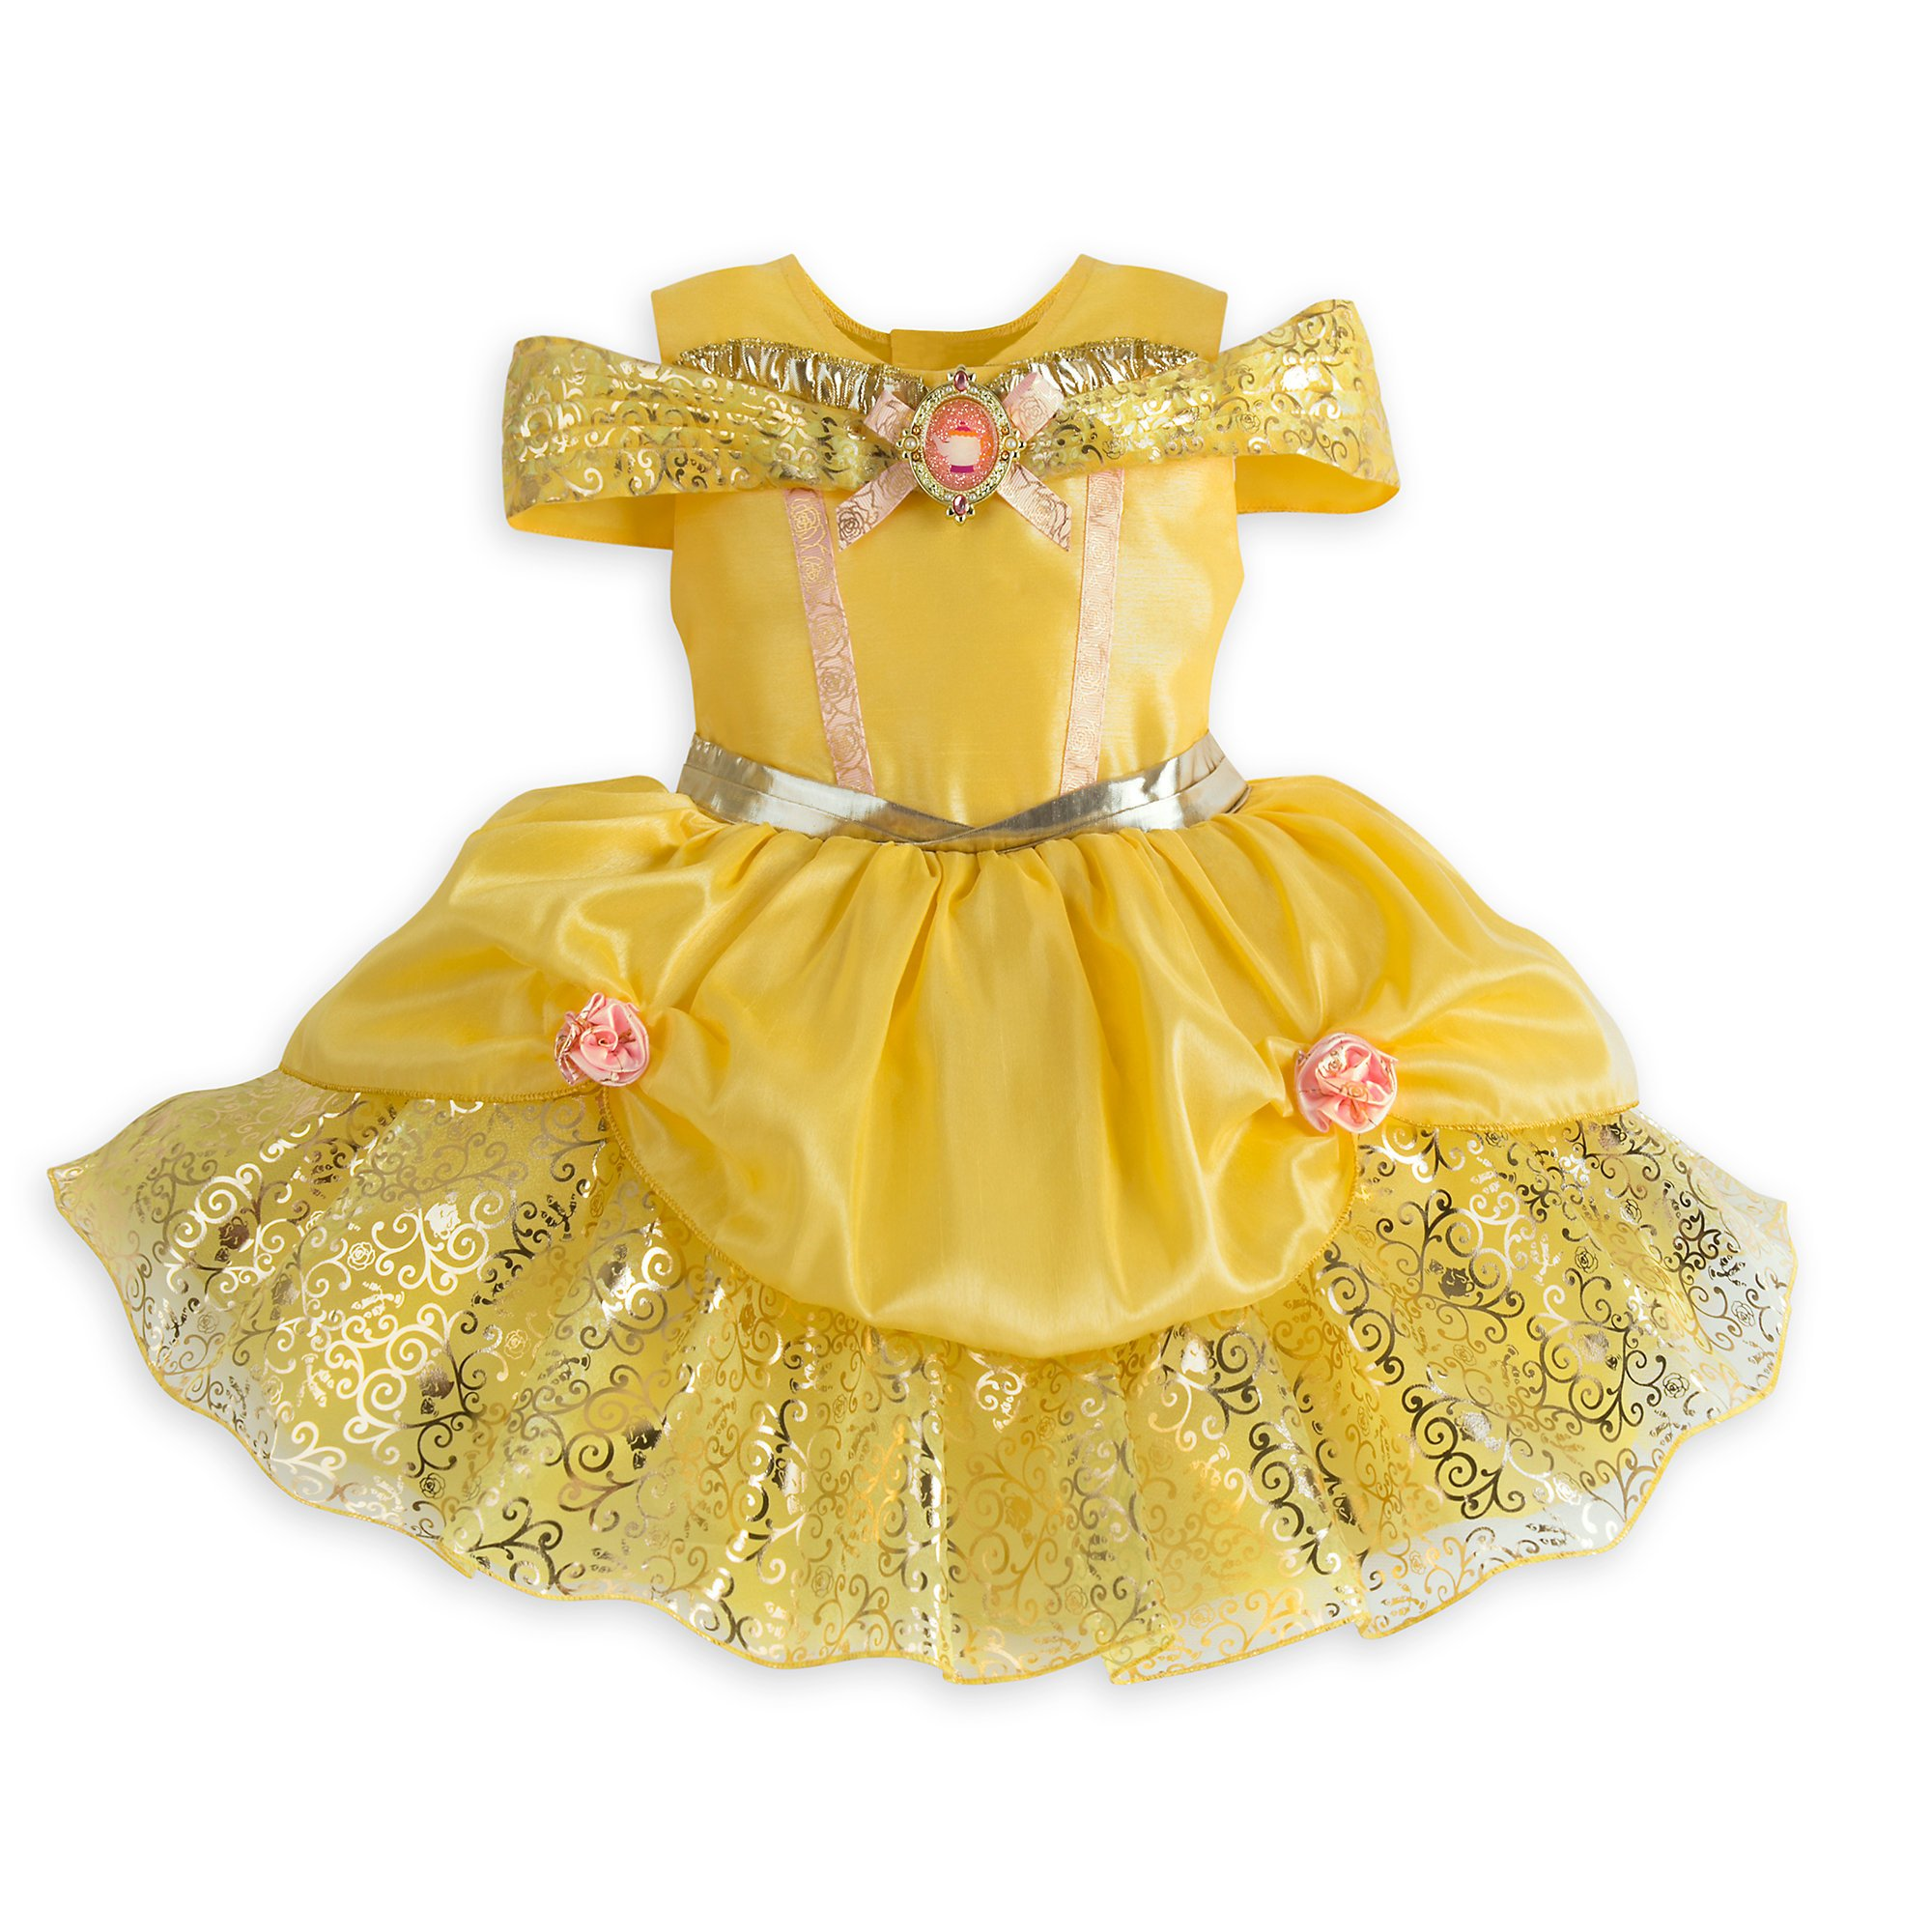 Disney Belle Costume for Baby - Beauty and The Beast